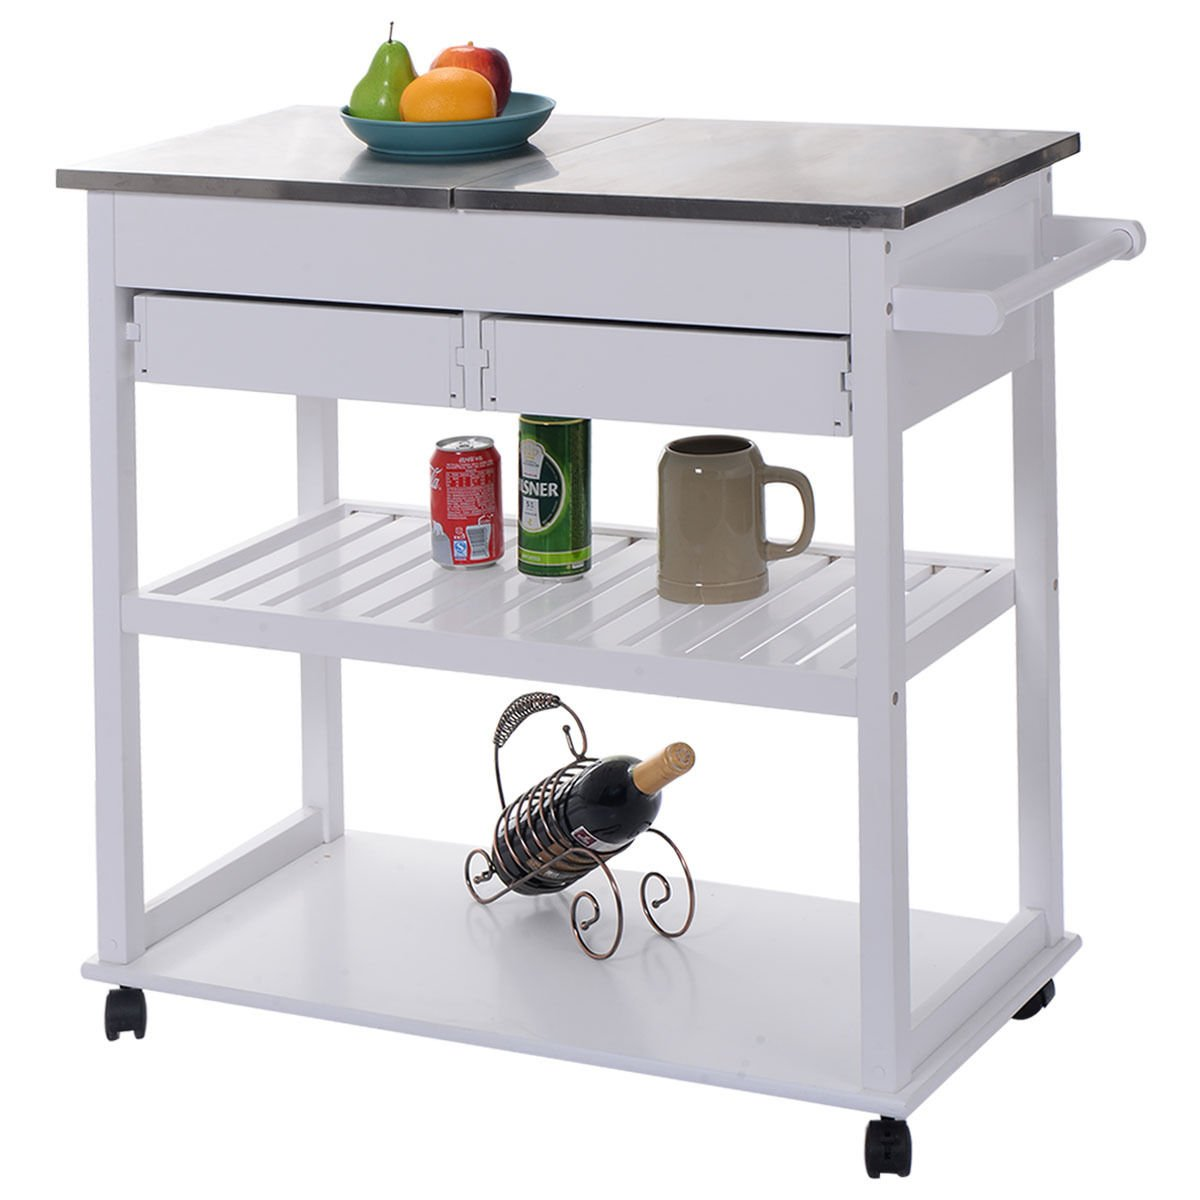 amazon com giantex white rolling kitchen trolley cart stainless amazon com giantex white rolling kitchen trolley cart stainless steel flip top w drawers casters kitchen islands carts